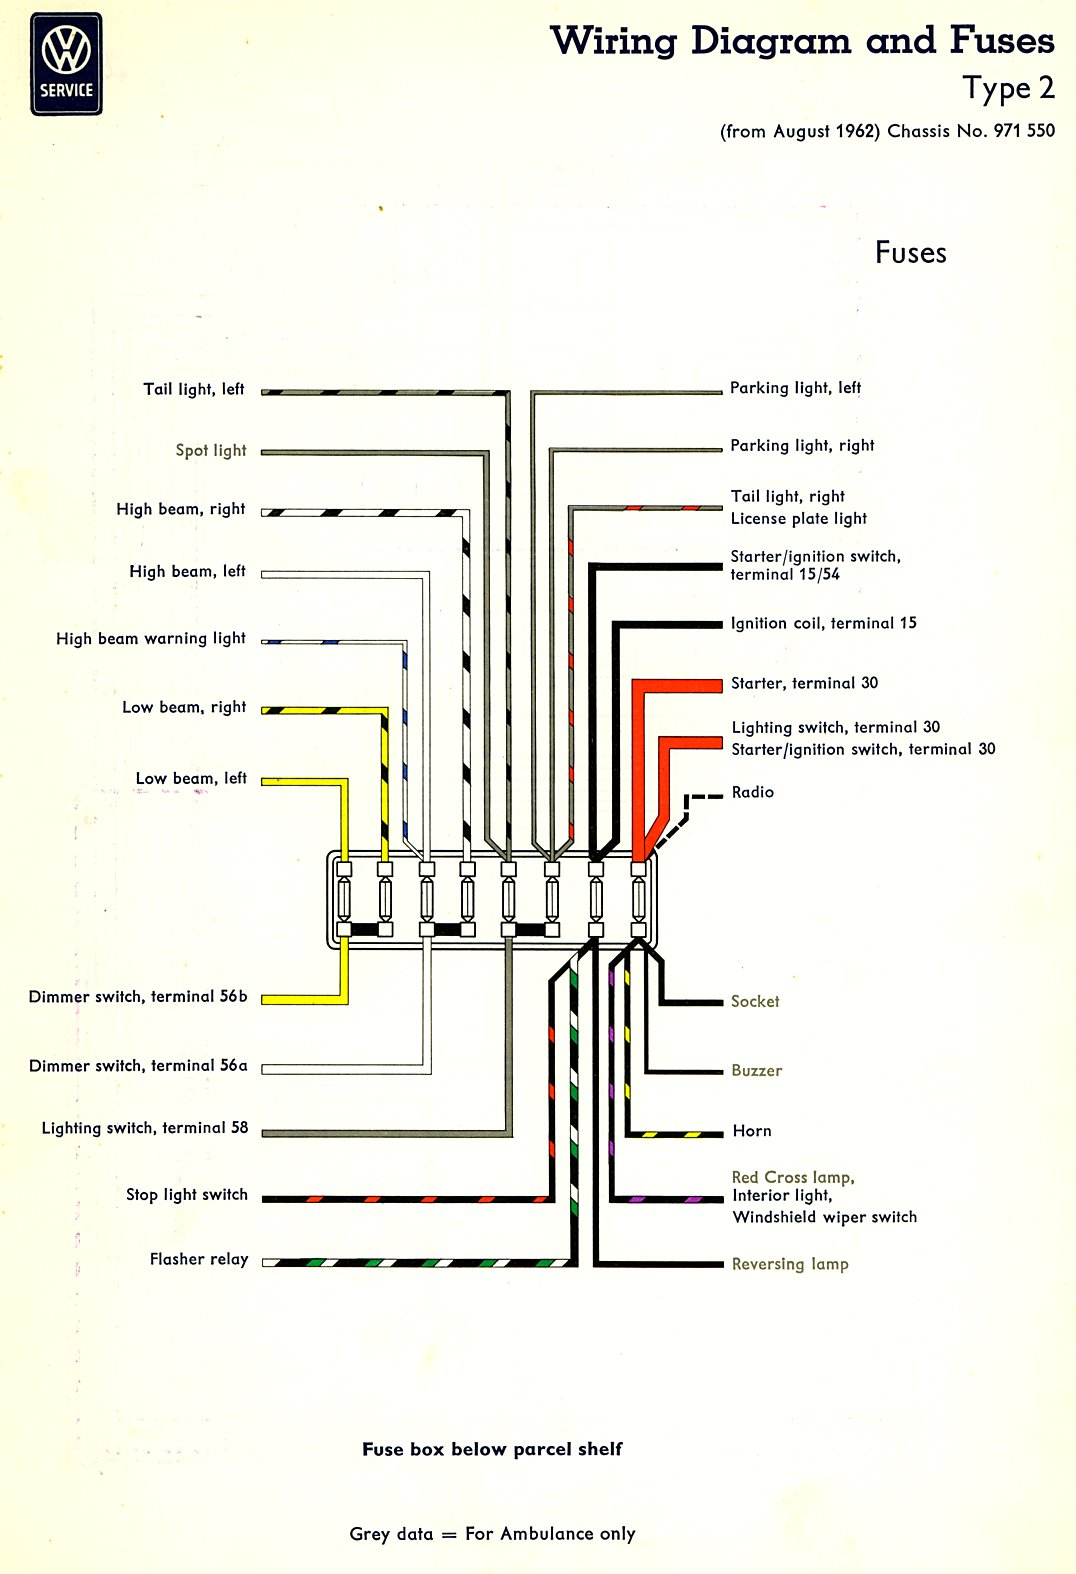 1967 Vw Fuse Box on 1972 dodge truck headlight diagrams